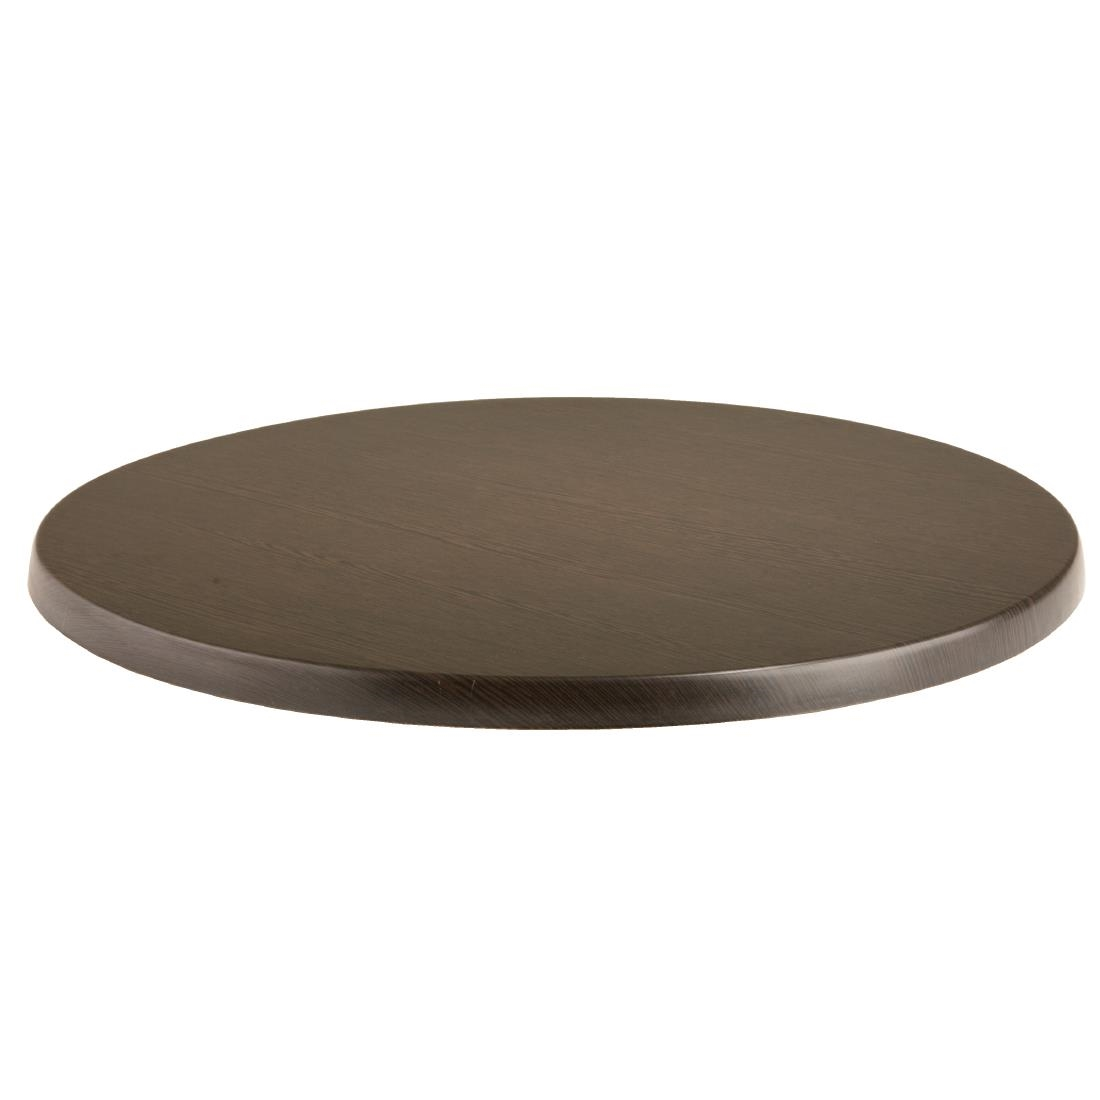 Round Table Tops Werzalit Pre Drilled Round Table Tops Wenge